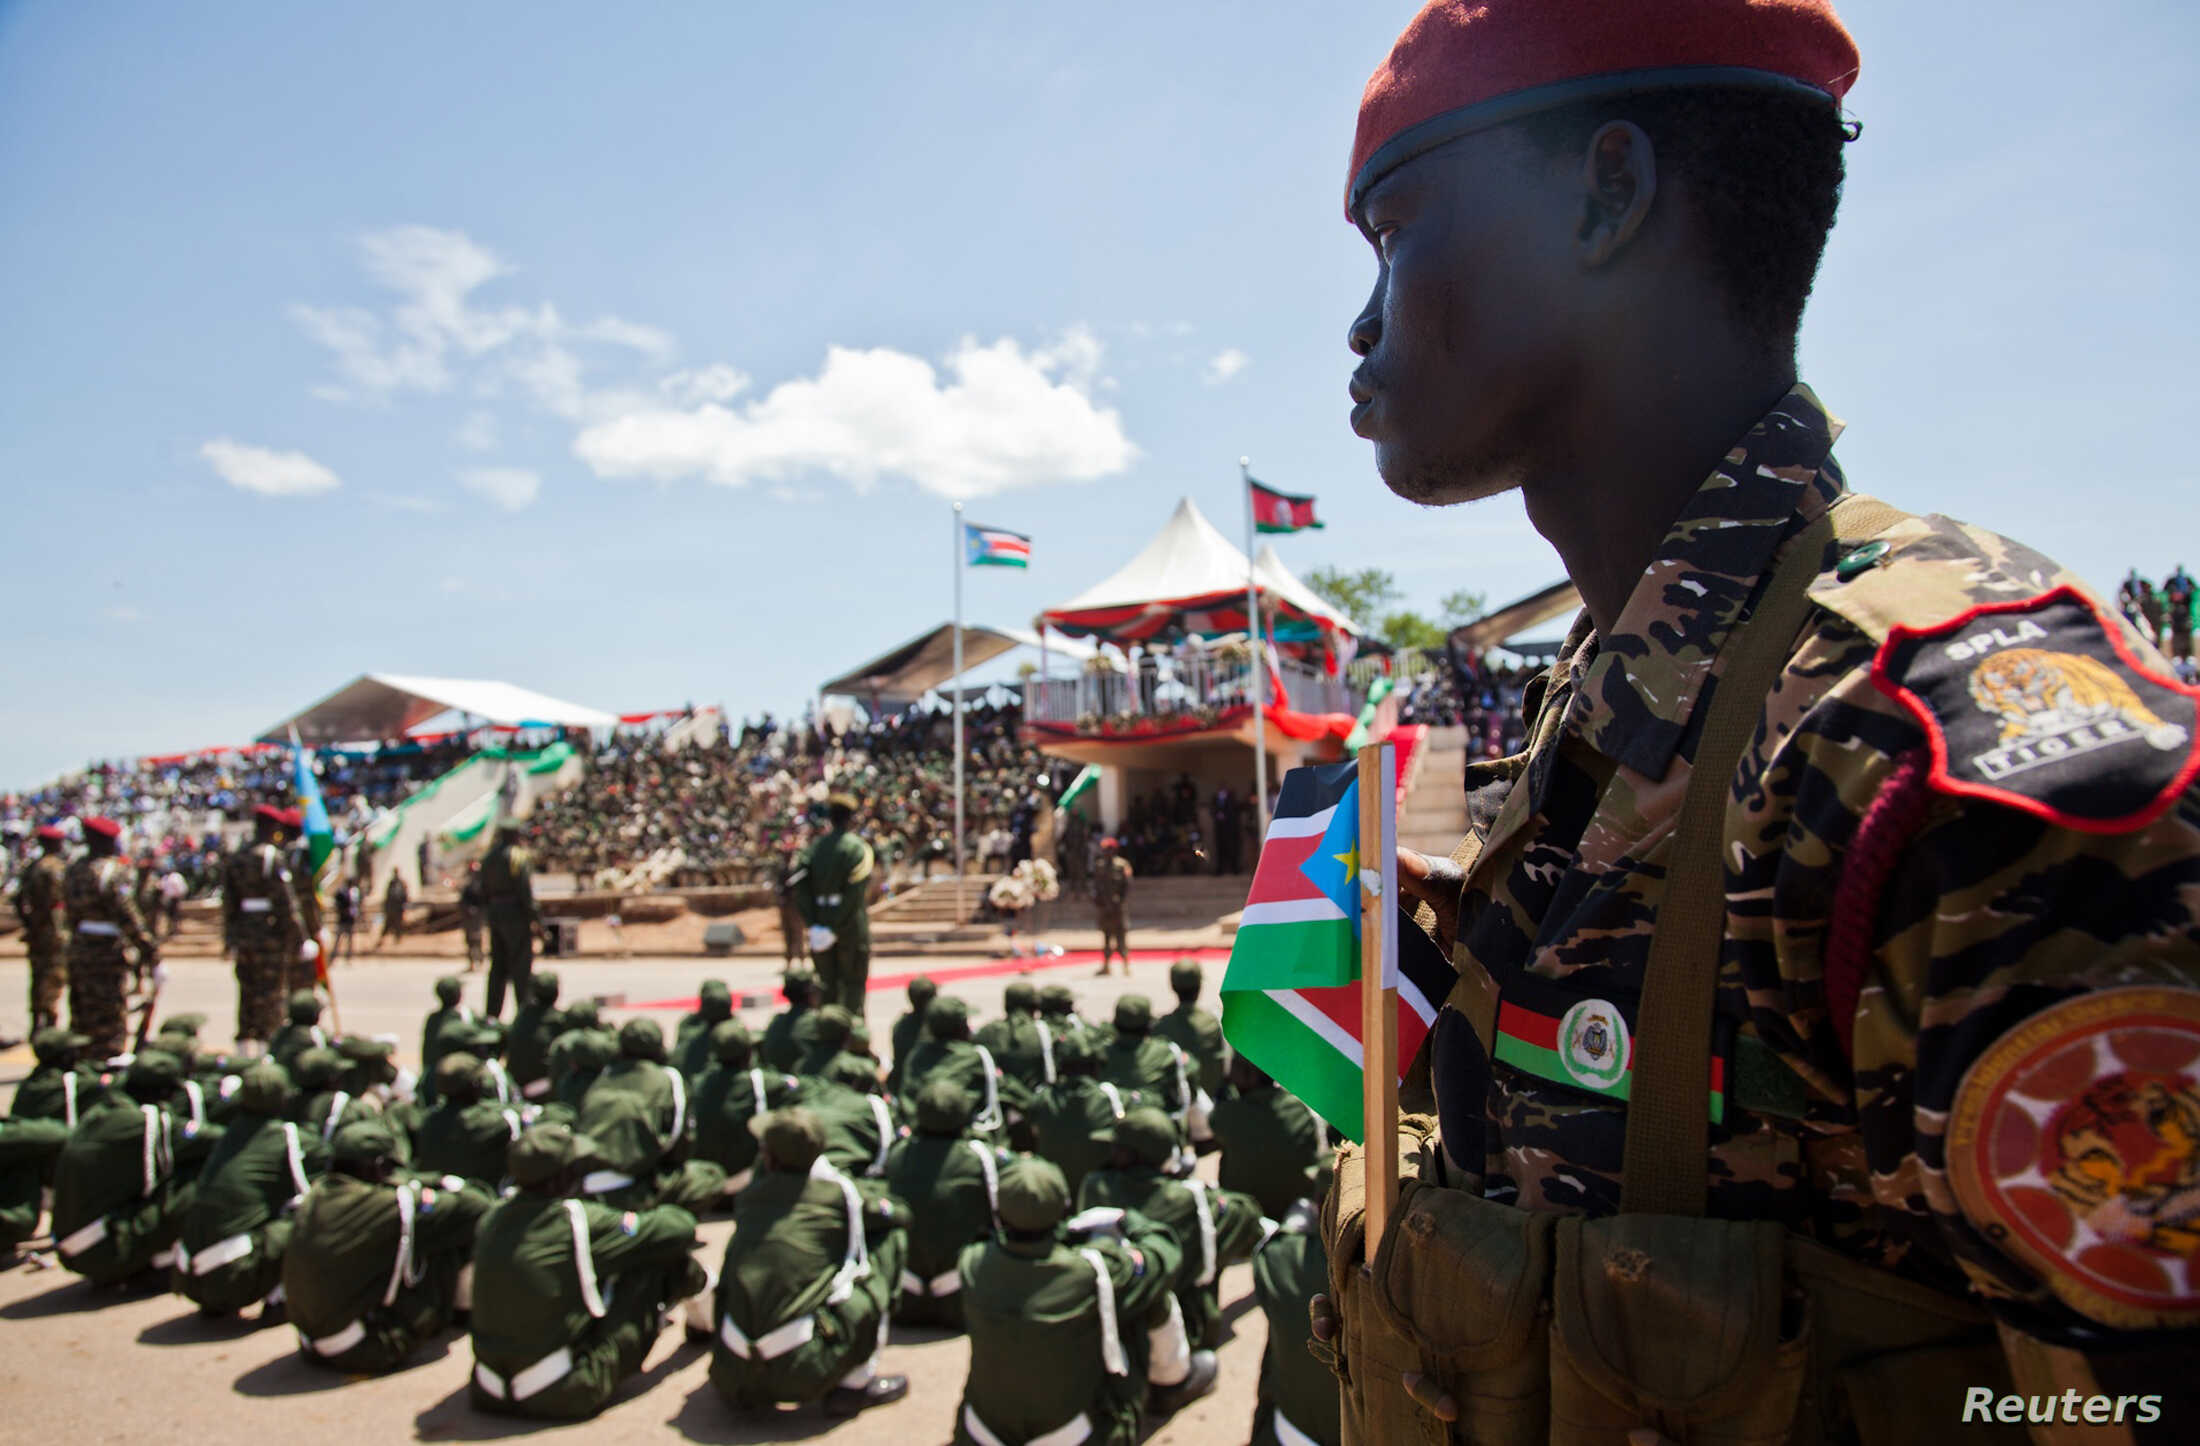 A Sudan People's Liberation Army (SPLA) soldier watches on during a parade celebrating their 29th anniversary in South Sudan's capital Juba, FILE May 16, 2012.